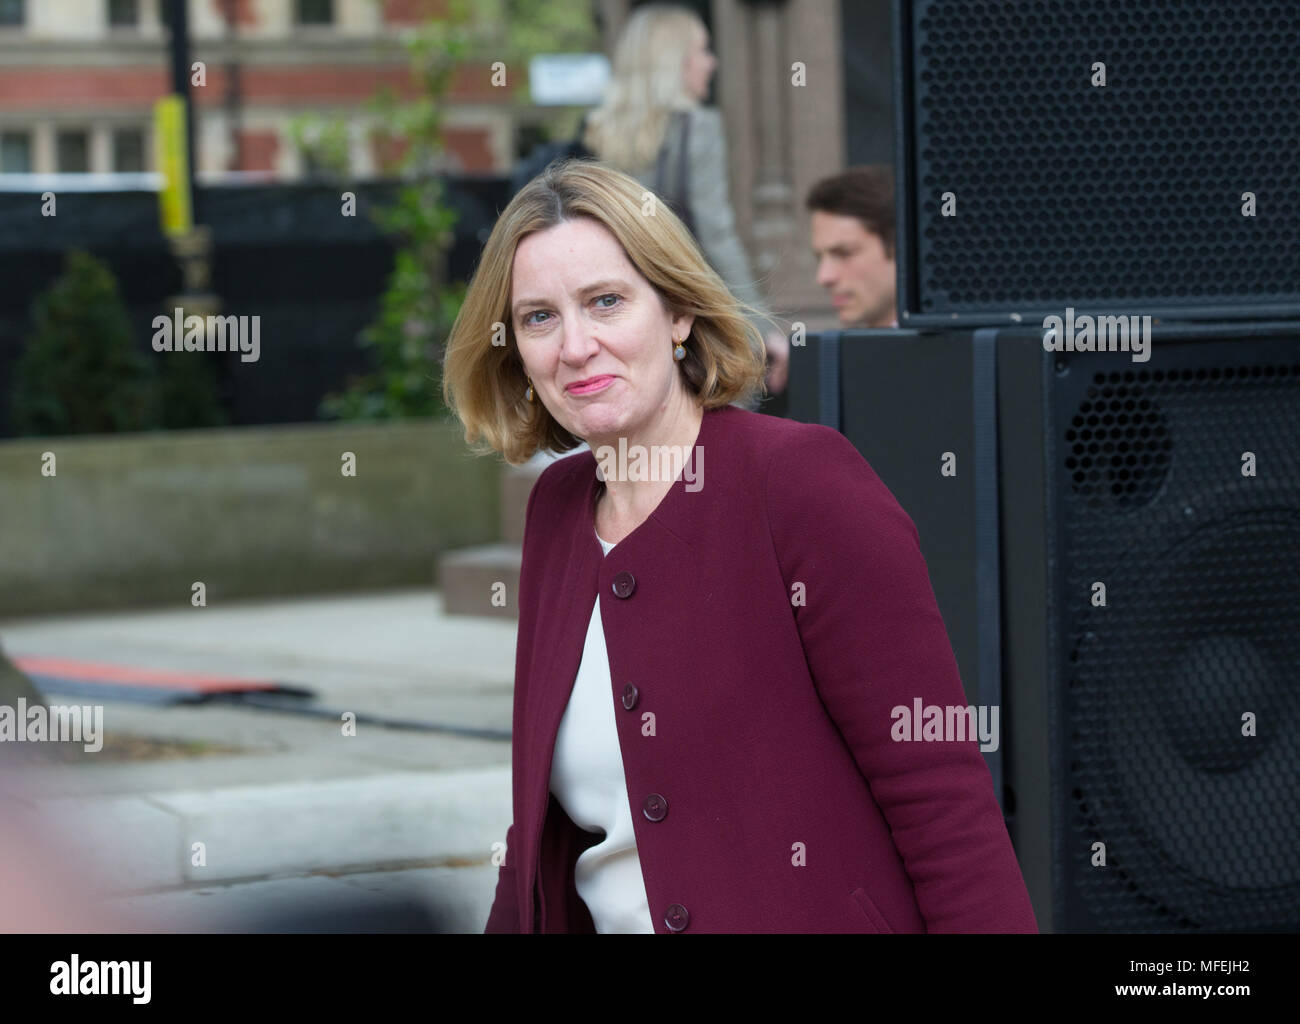 Former Home secretary, Amber Rudd, at the unveiling of the Statue of Millicent Fawcett to celebrate 100 years of women's suffrage. - Stock Image